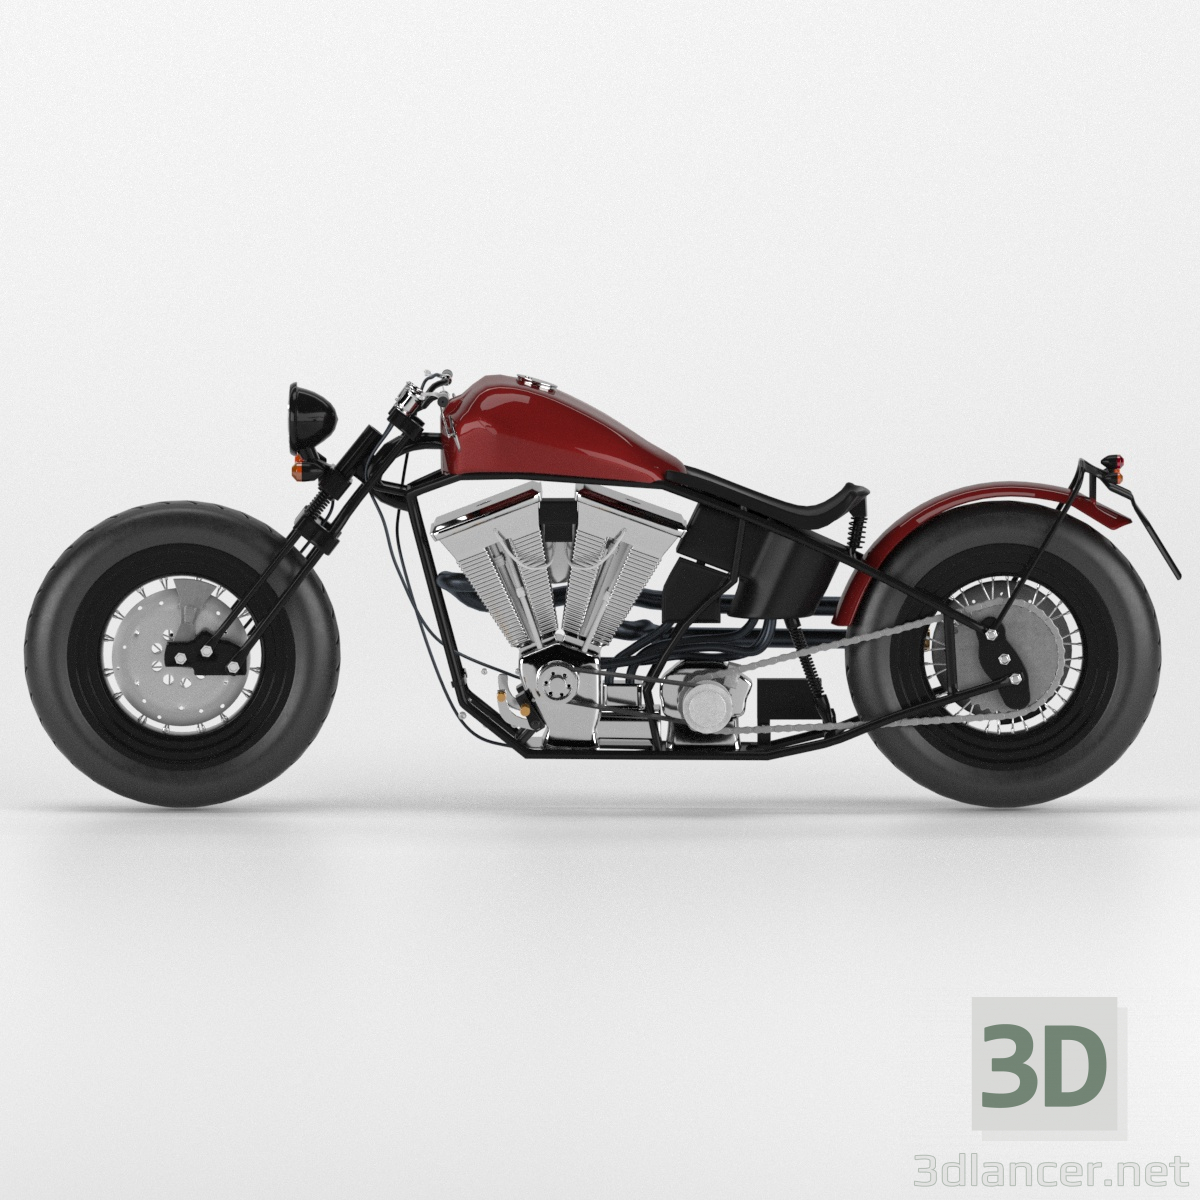 3d Motorcycle Zero Engineering type 9 model buy - render